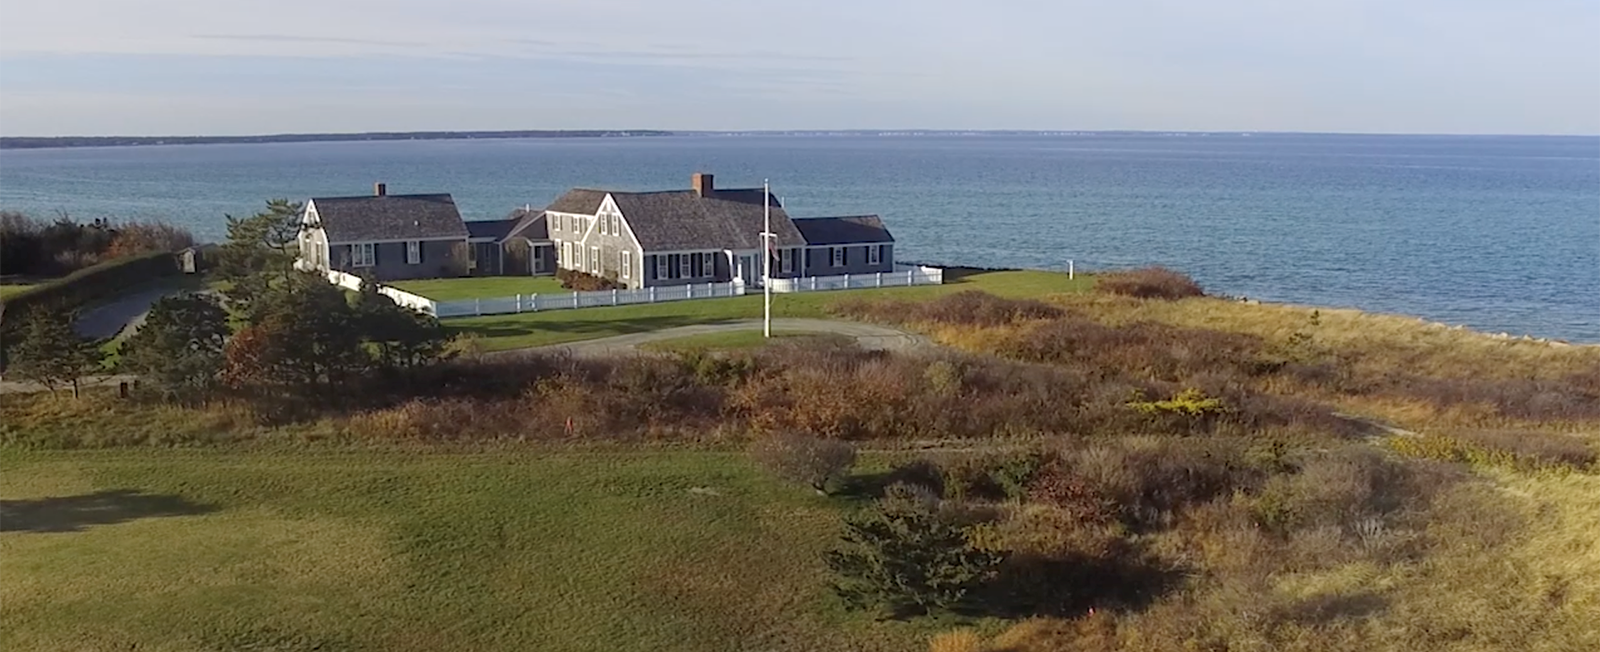 The fall is a favorite season on the Cape & Islands and we tell you why in the latest episode of EsCape TV!